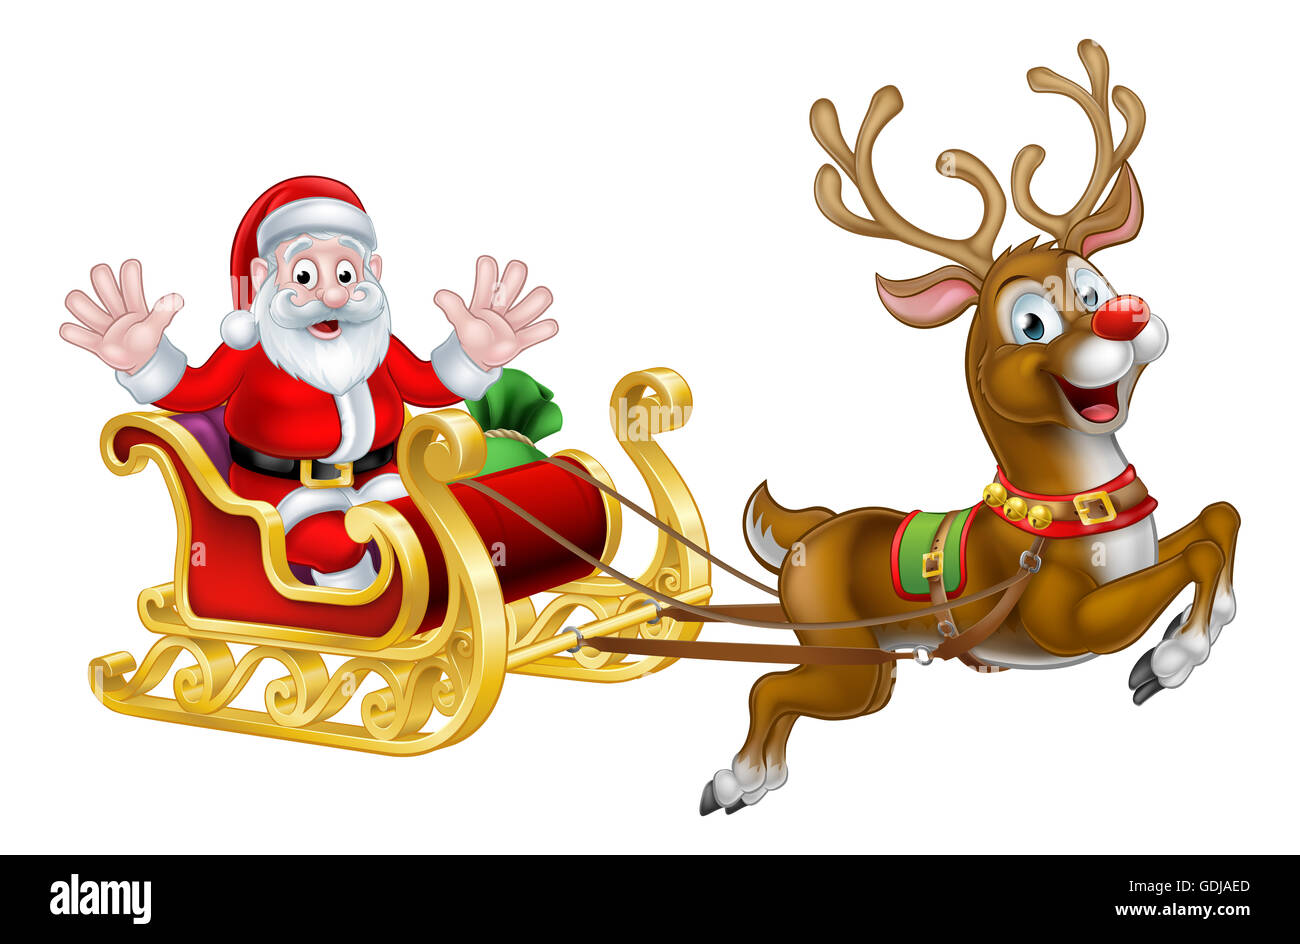 Cartoon Santa Claus In His Christmas Sleigh Sled With His